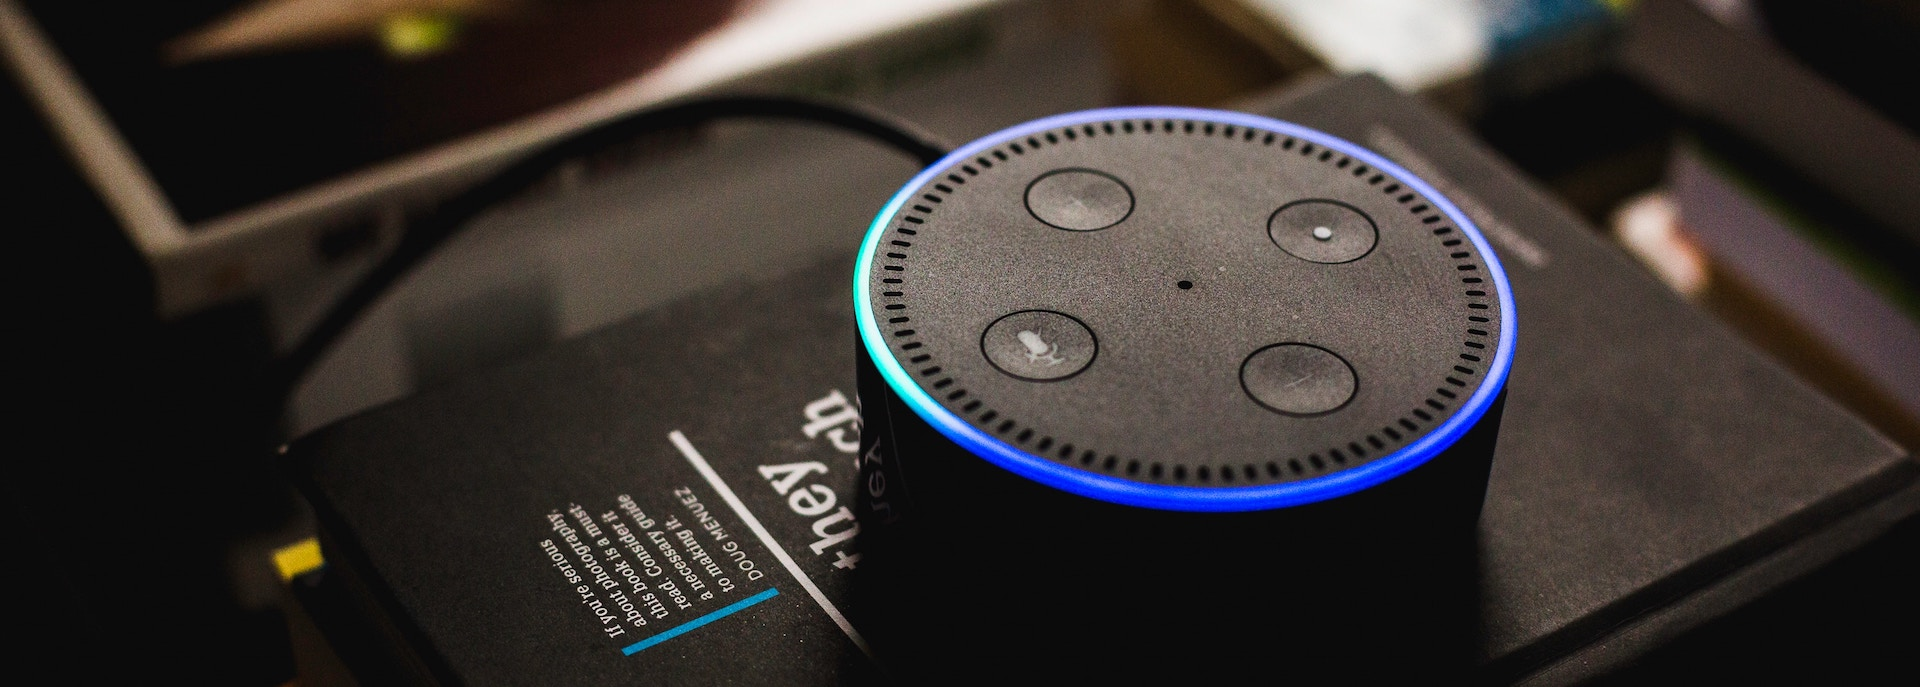 Image for How to build an Alexa skill